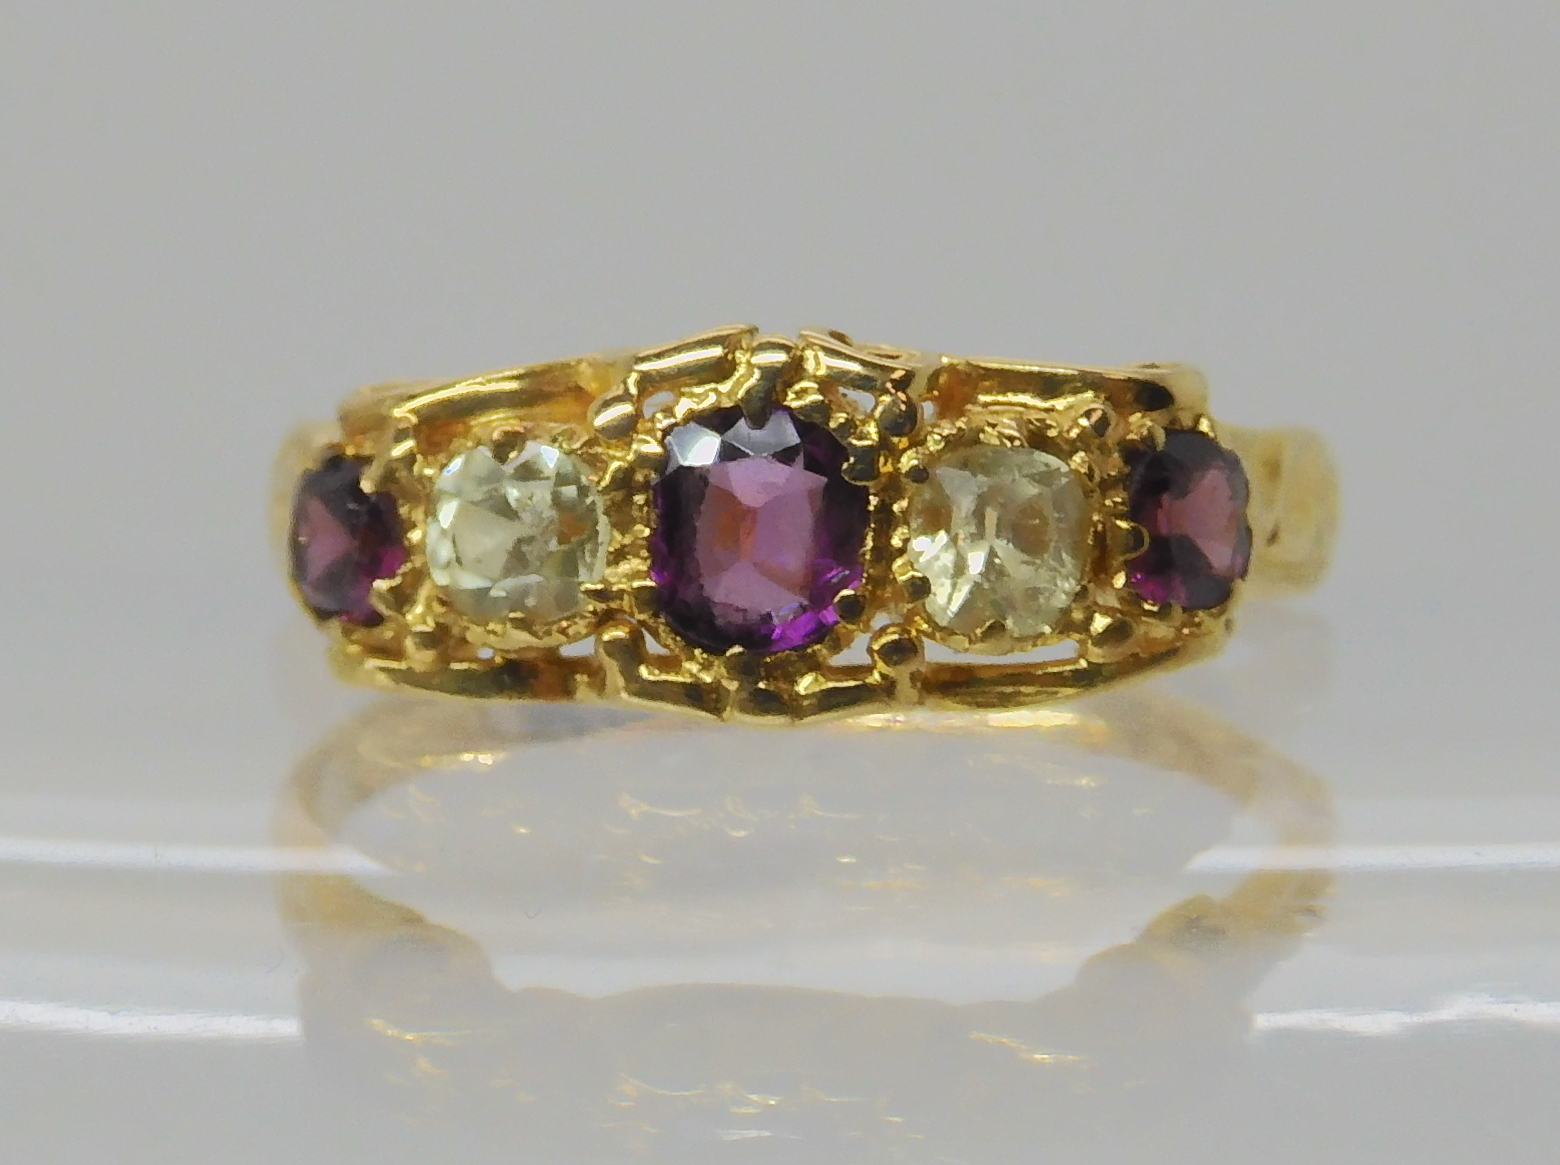 A VICTORIAN GEM SET RING inscribed and dated 1861, set with garnets and pale green gems, finger size - Image 2 of 7